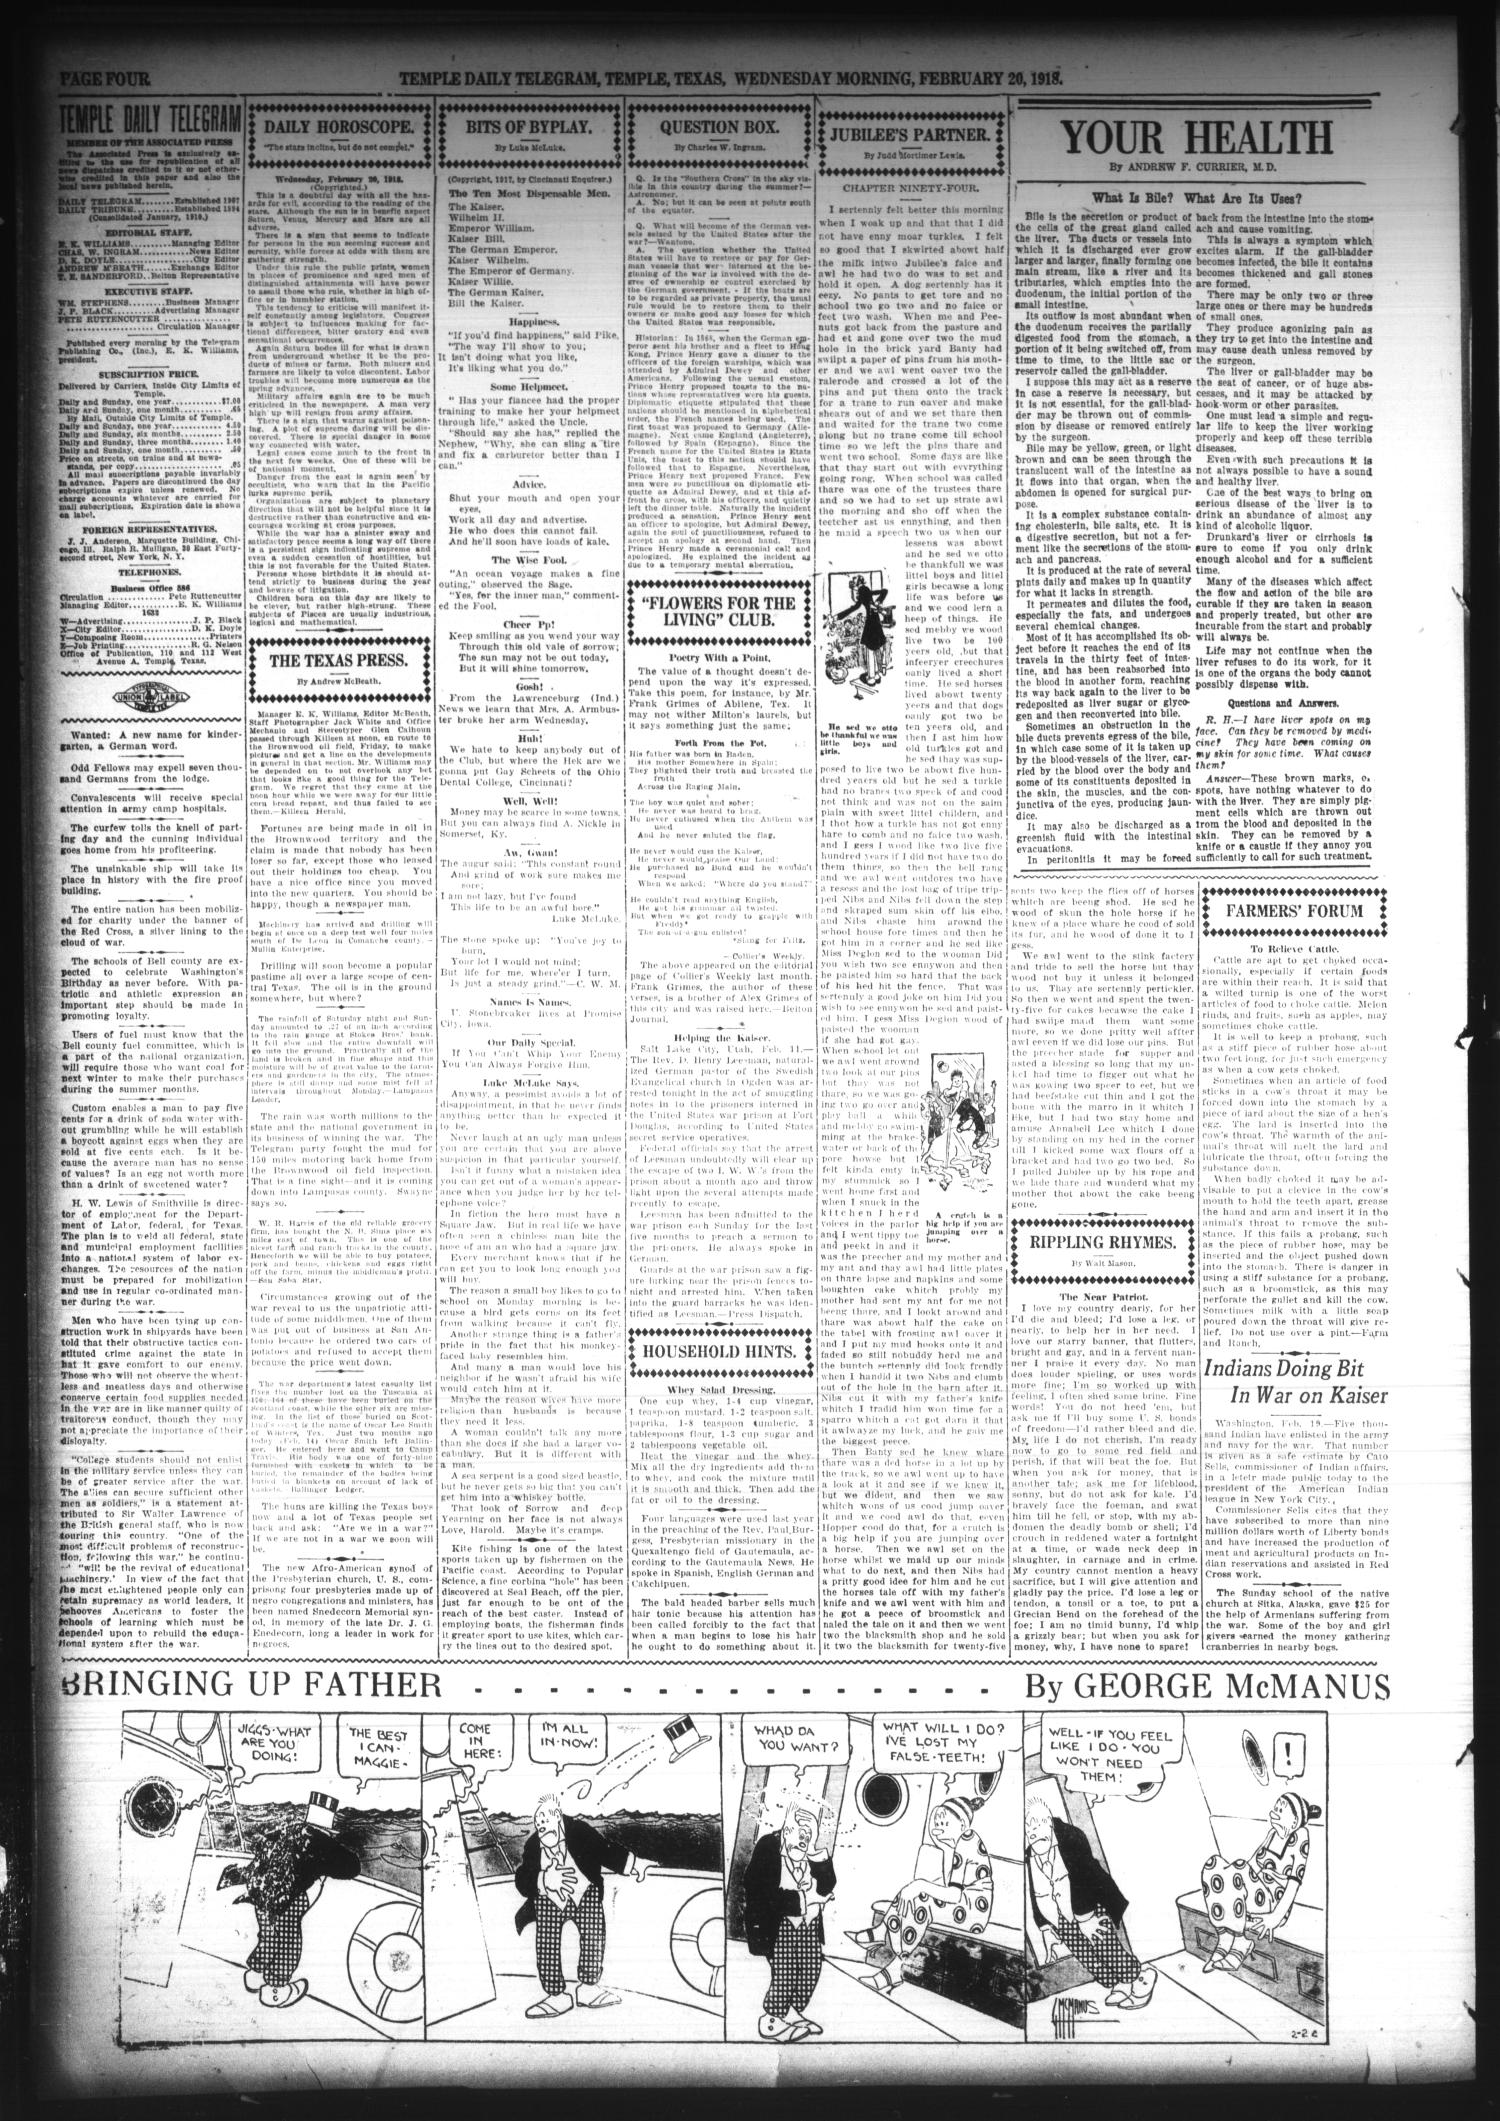 Temple Daily Telegram (Temple, Tex.), Vol. 11, No. 93, Ed. 1 Wednesday, February 20, 1918                                                                                                      [Sequence #]: 4 of 16